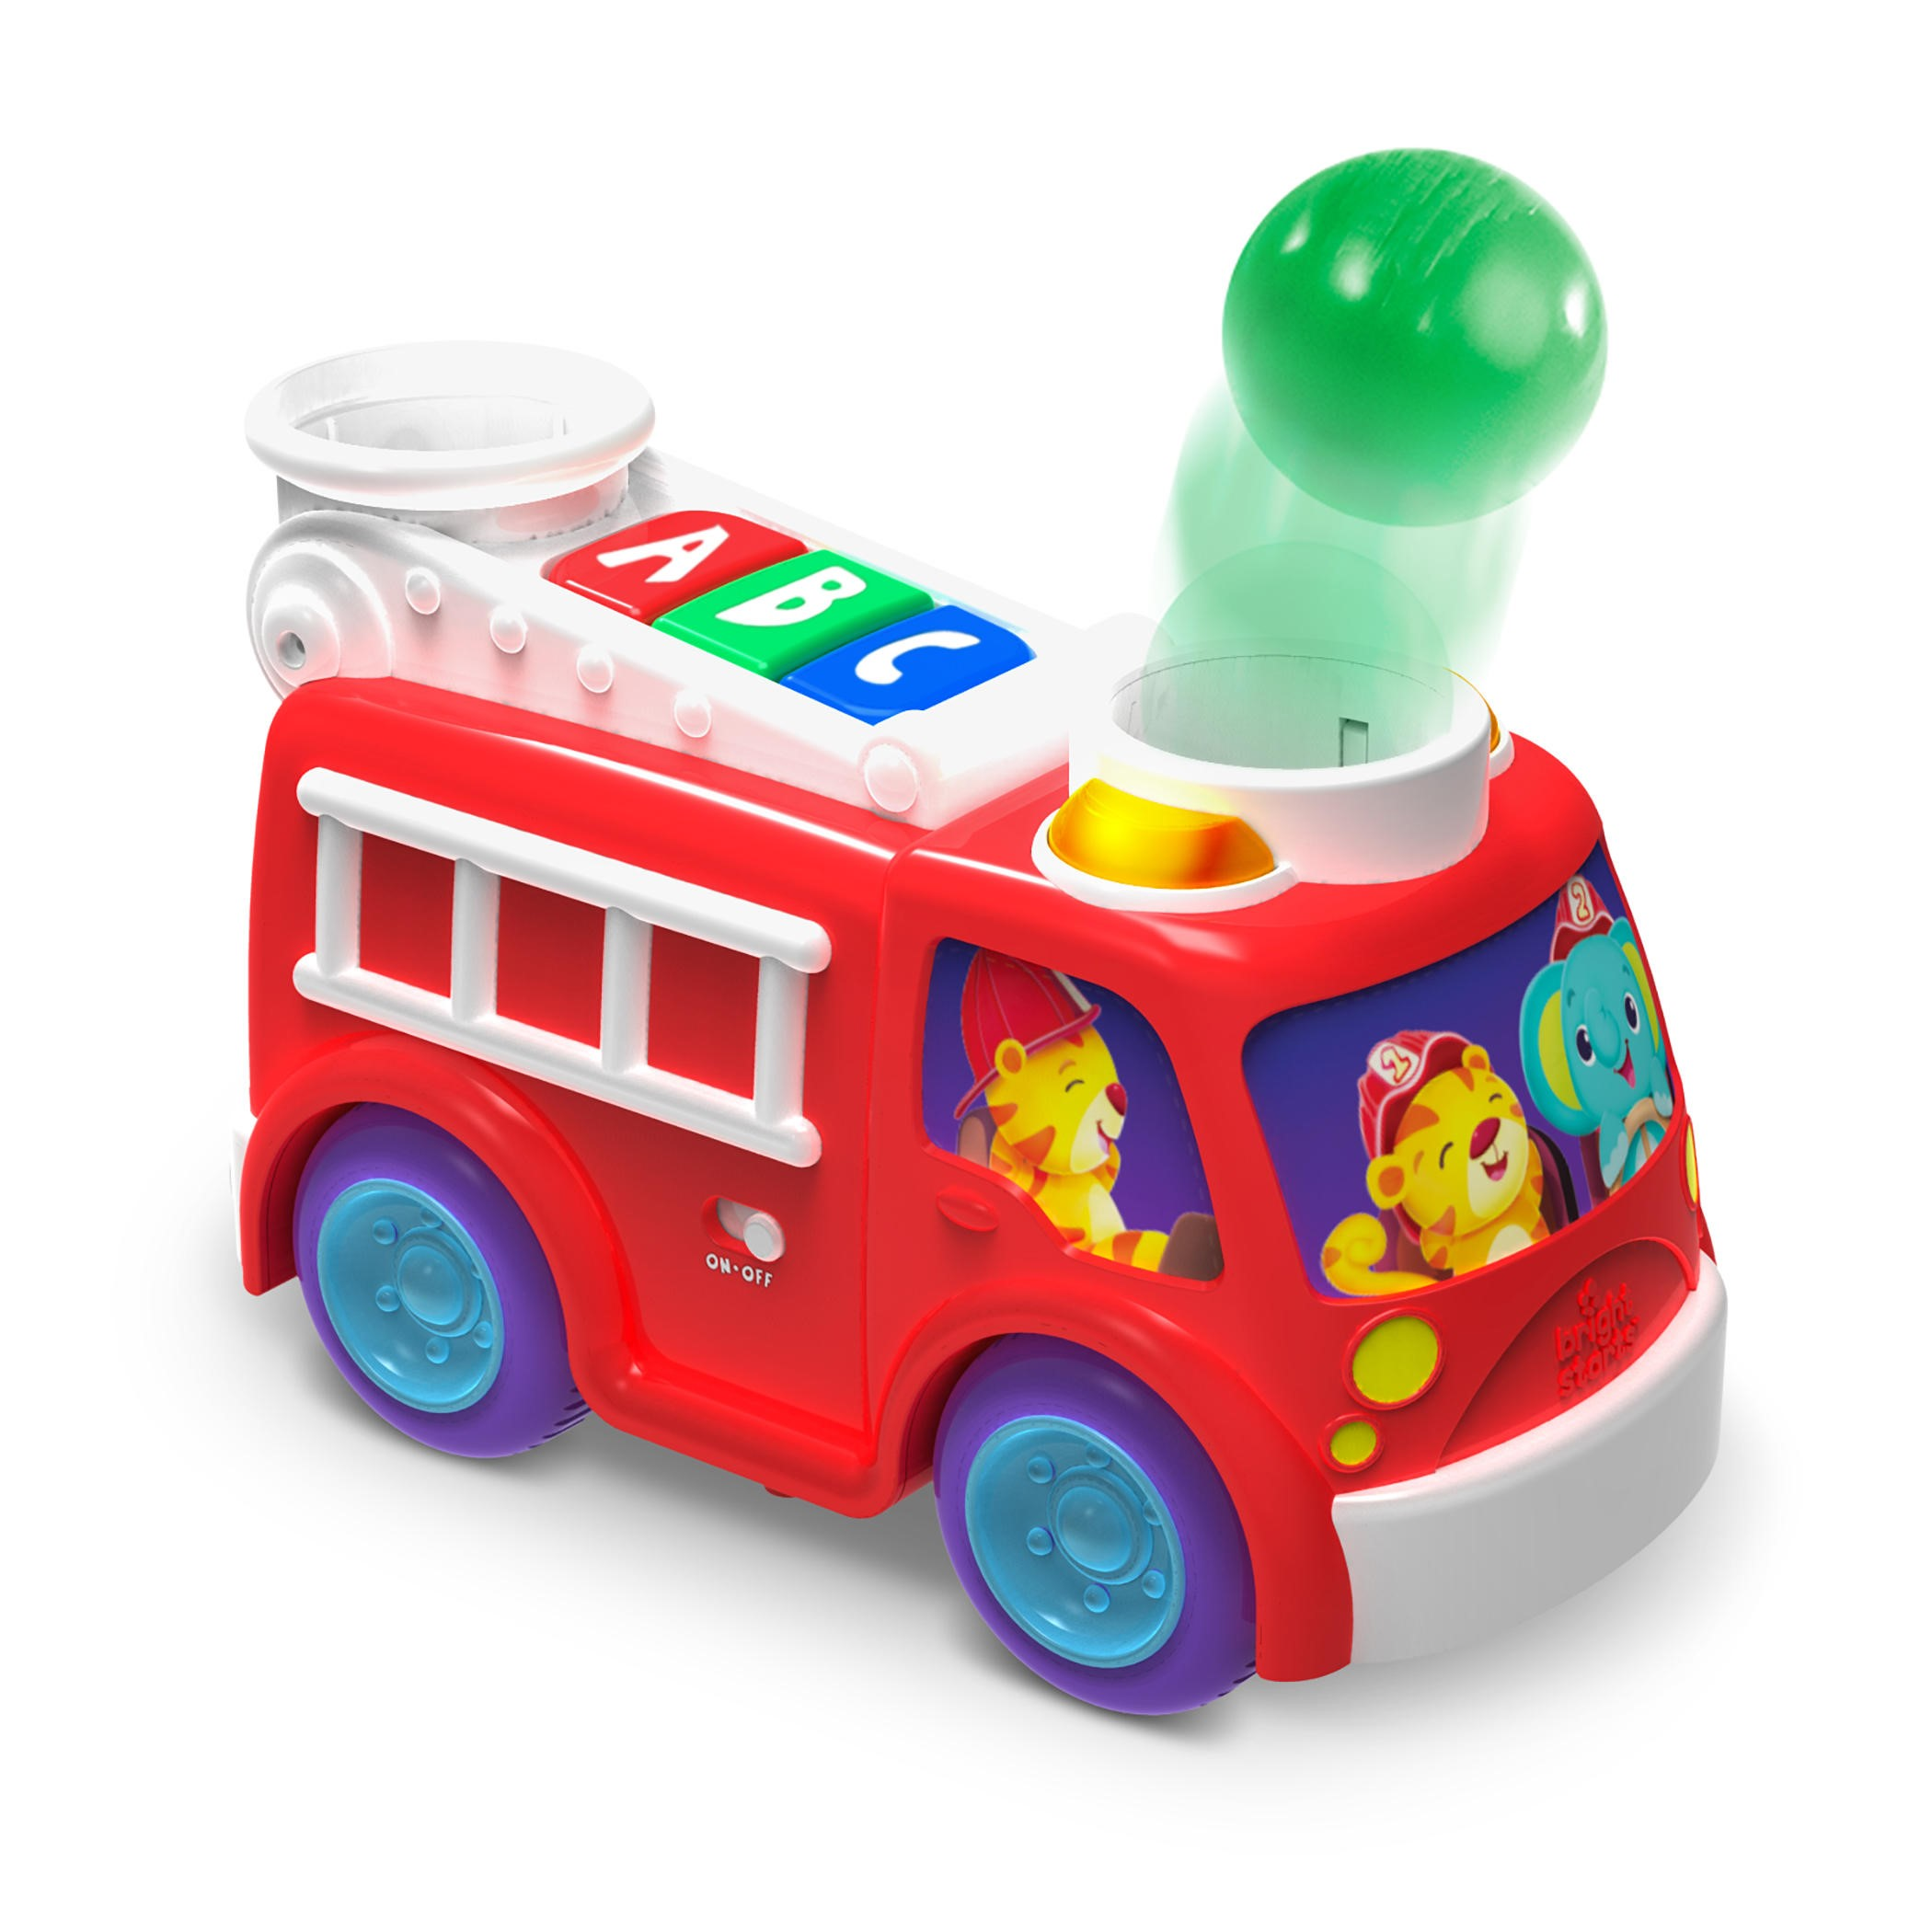 Bright Starts Roll & Pop Fire Truck Toy